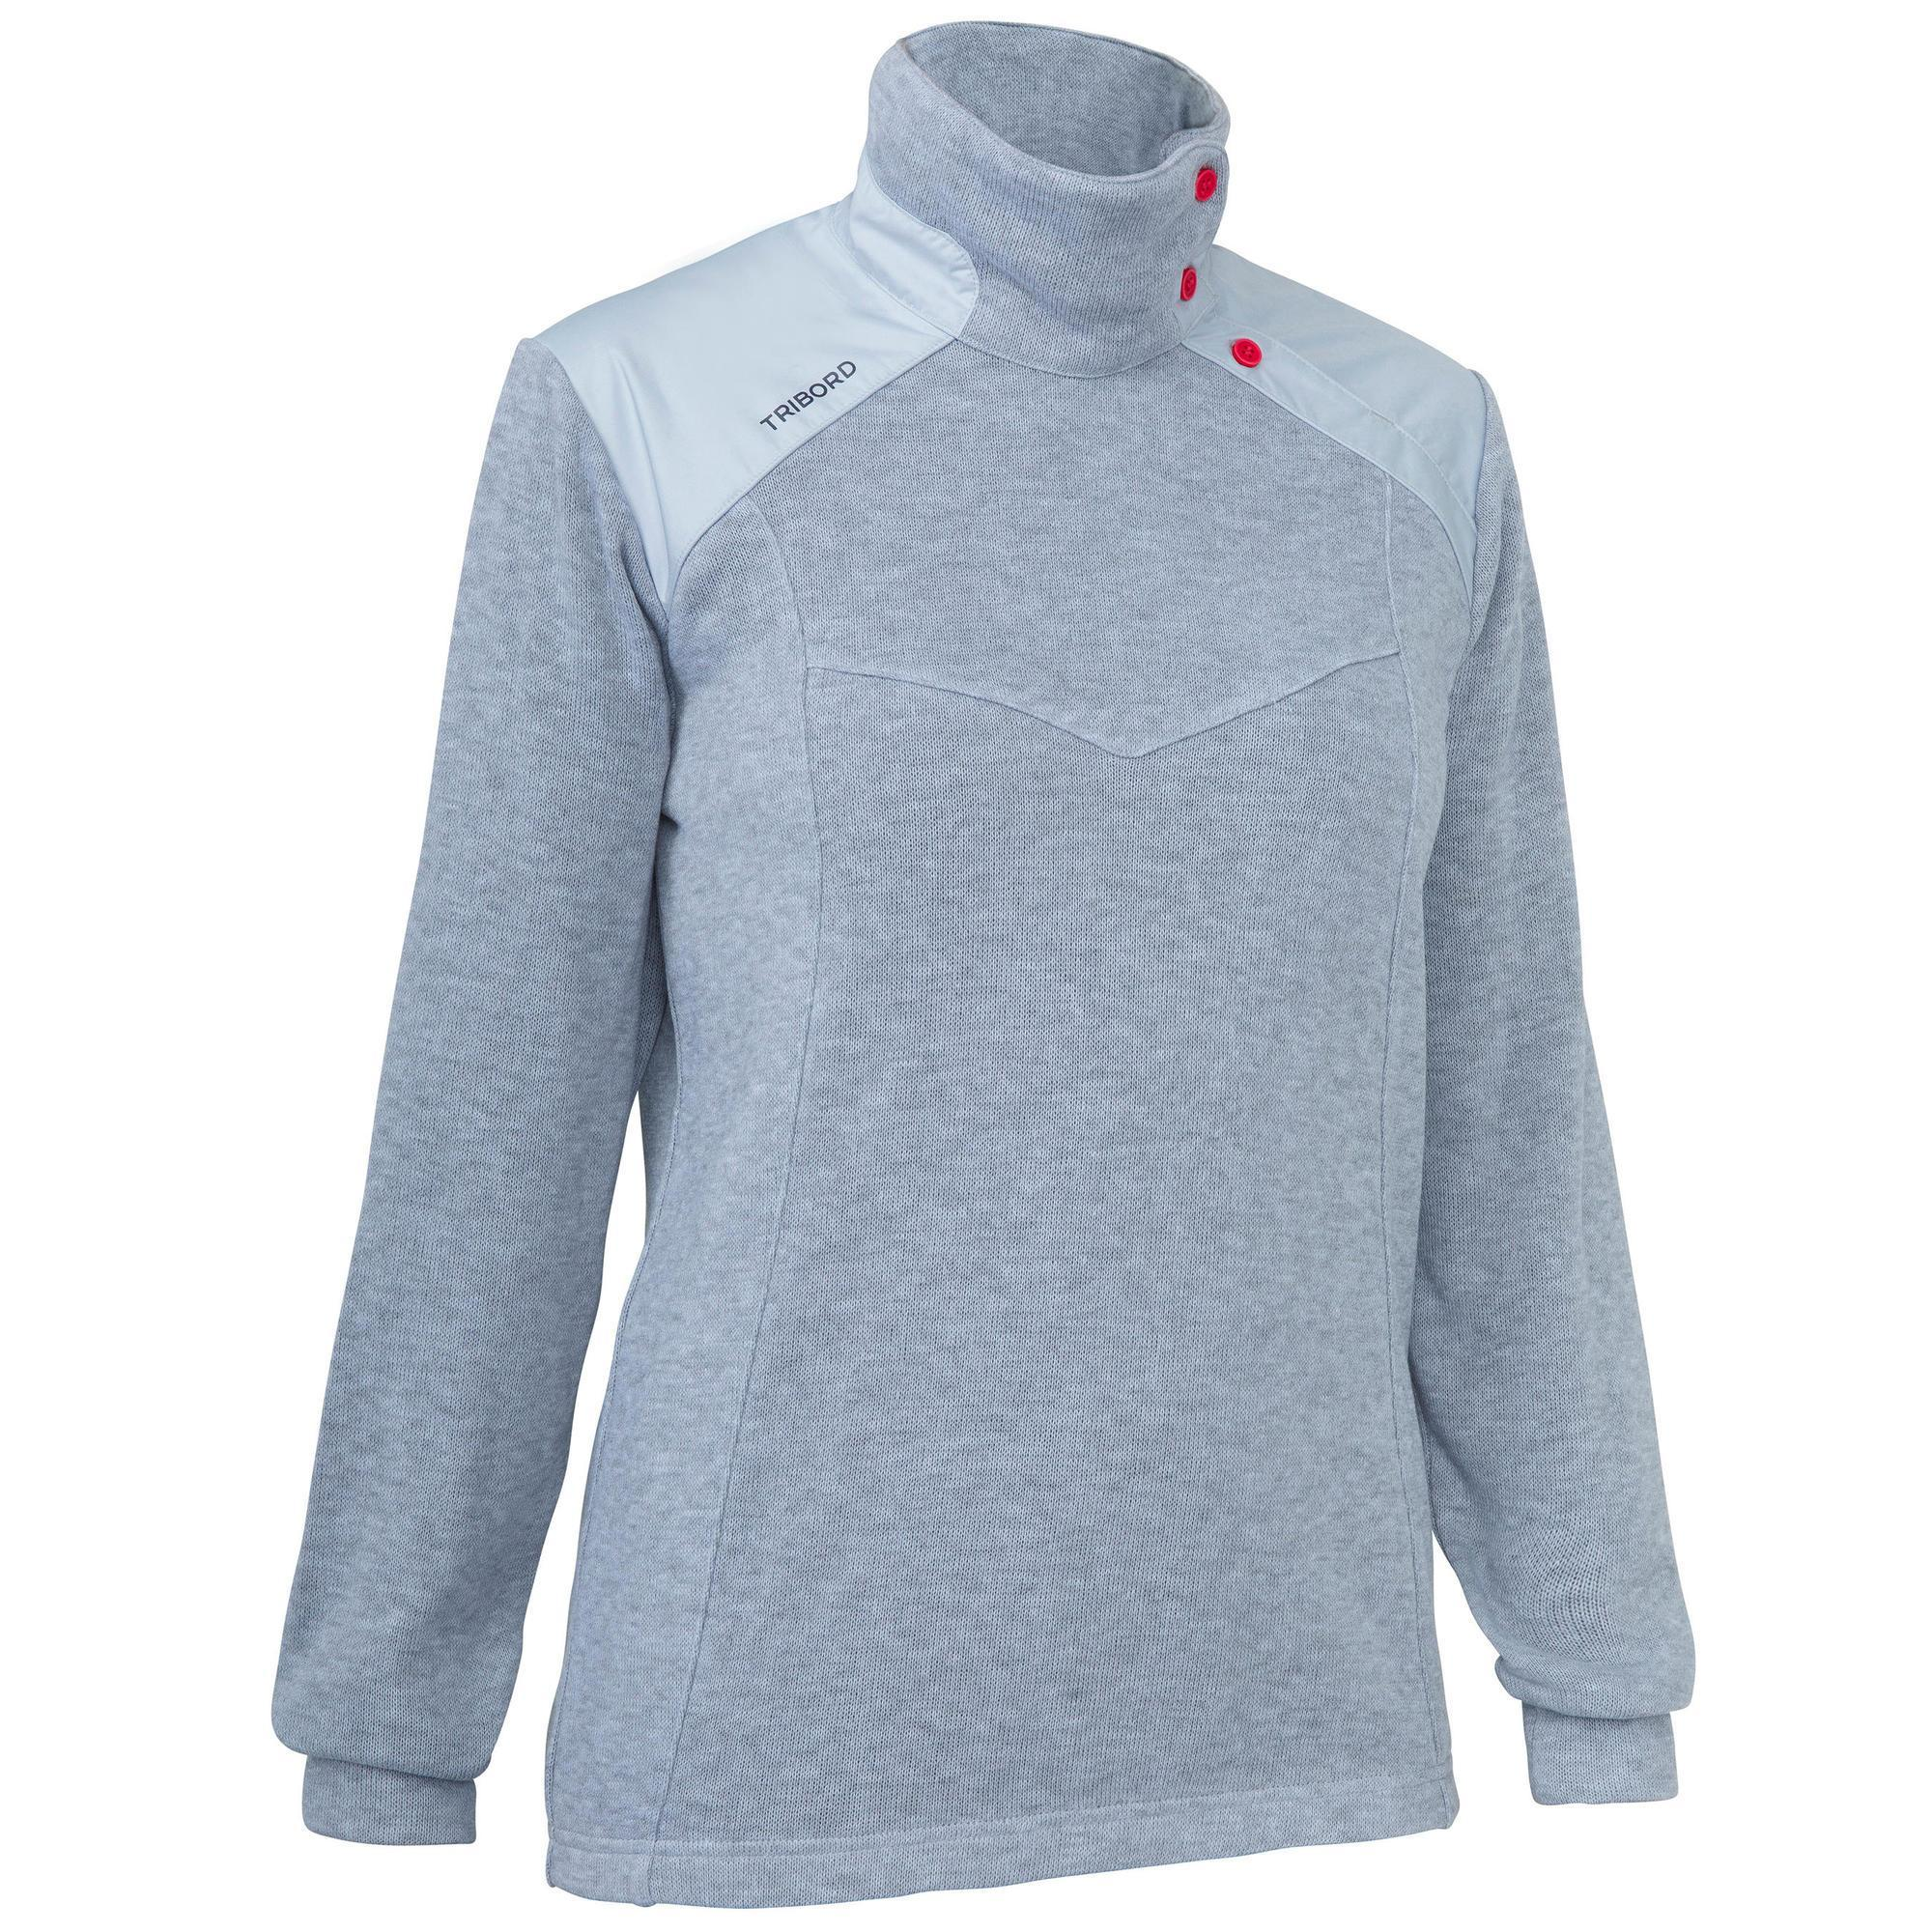 Pull marin chaud femme sailing 100 gris tribord